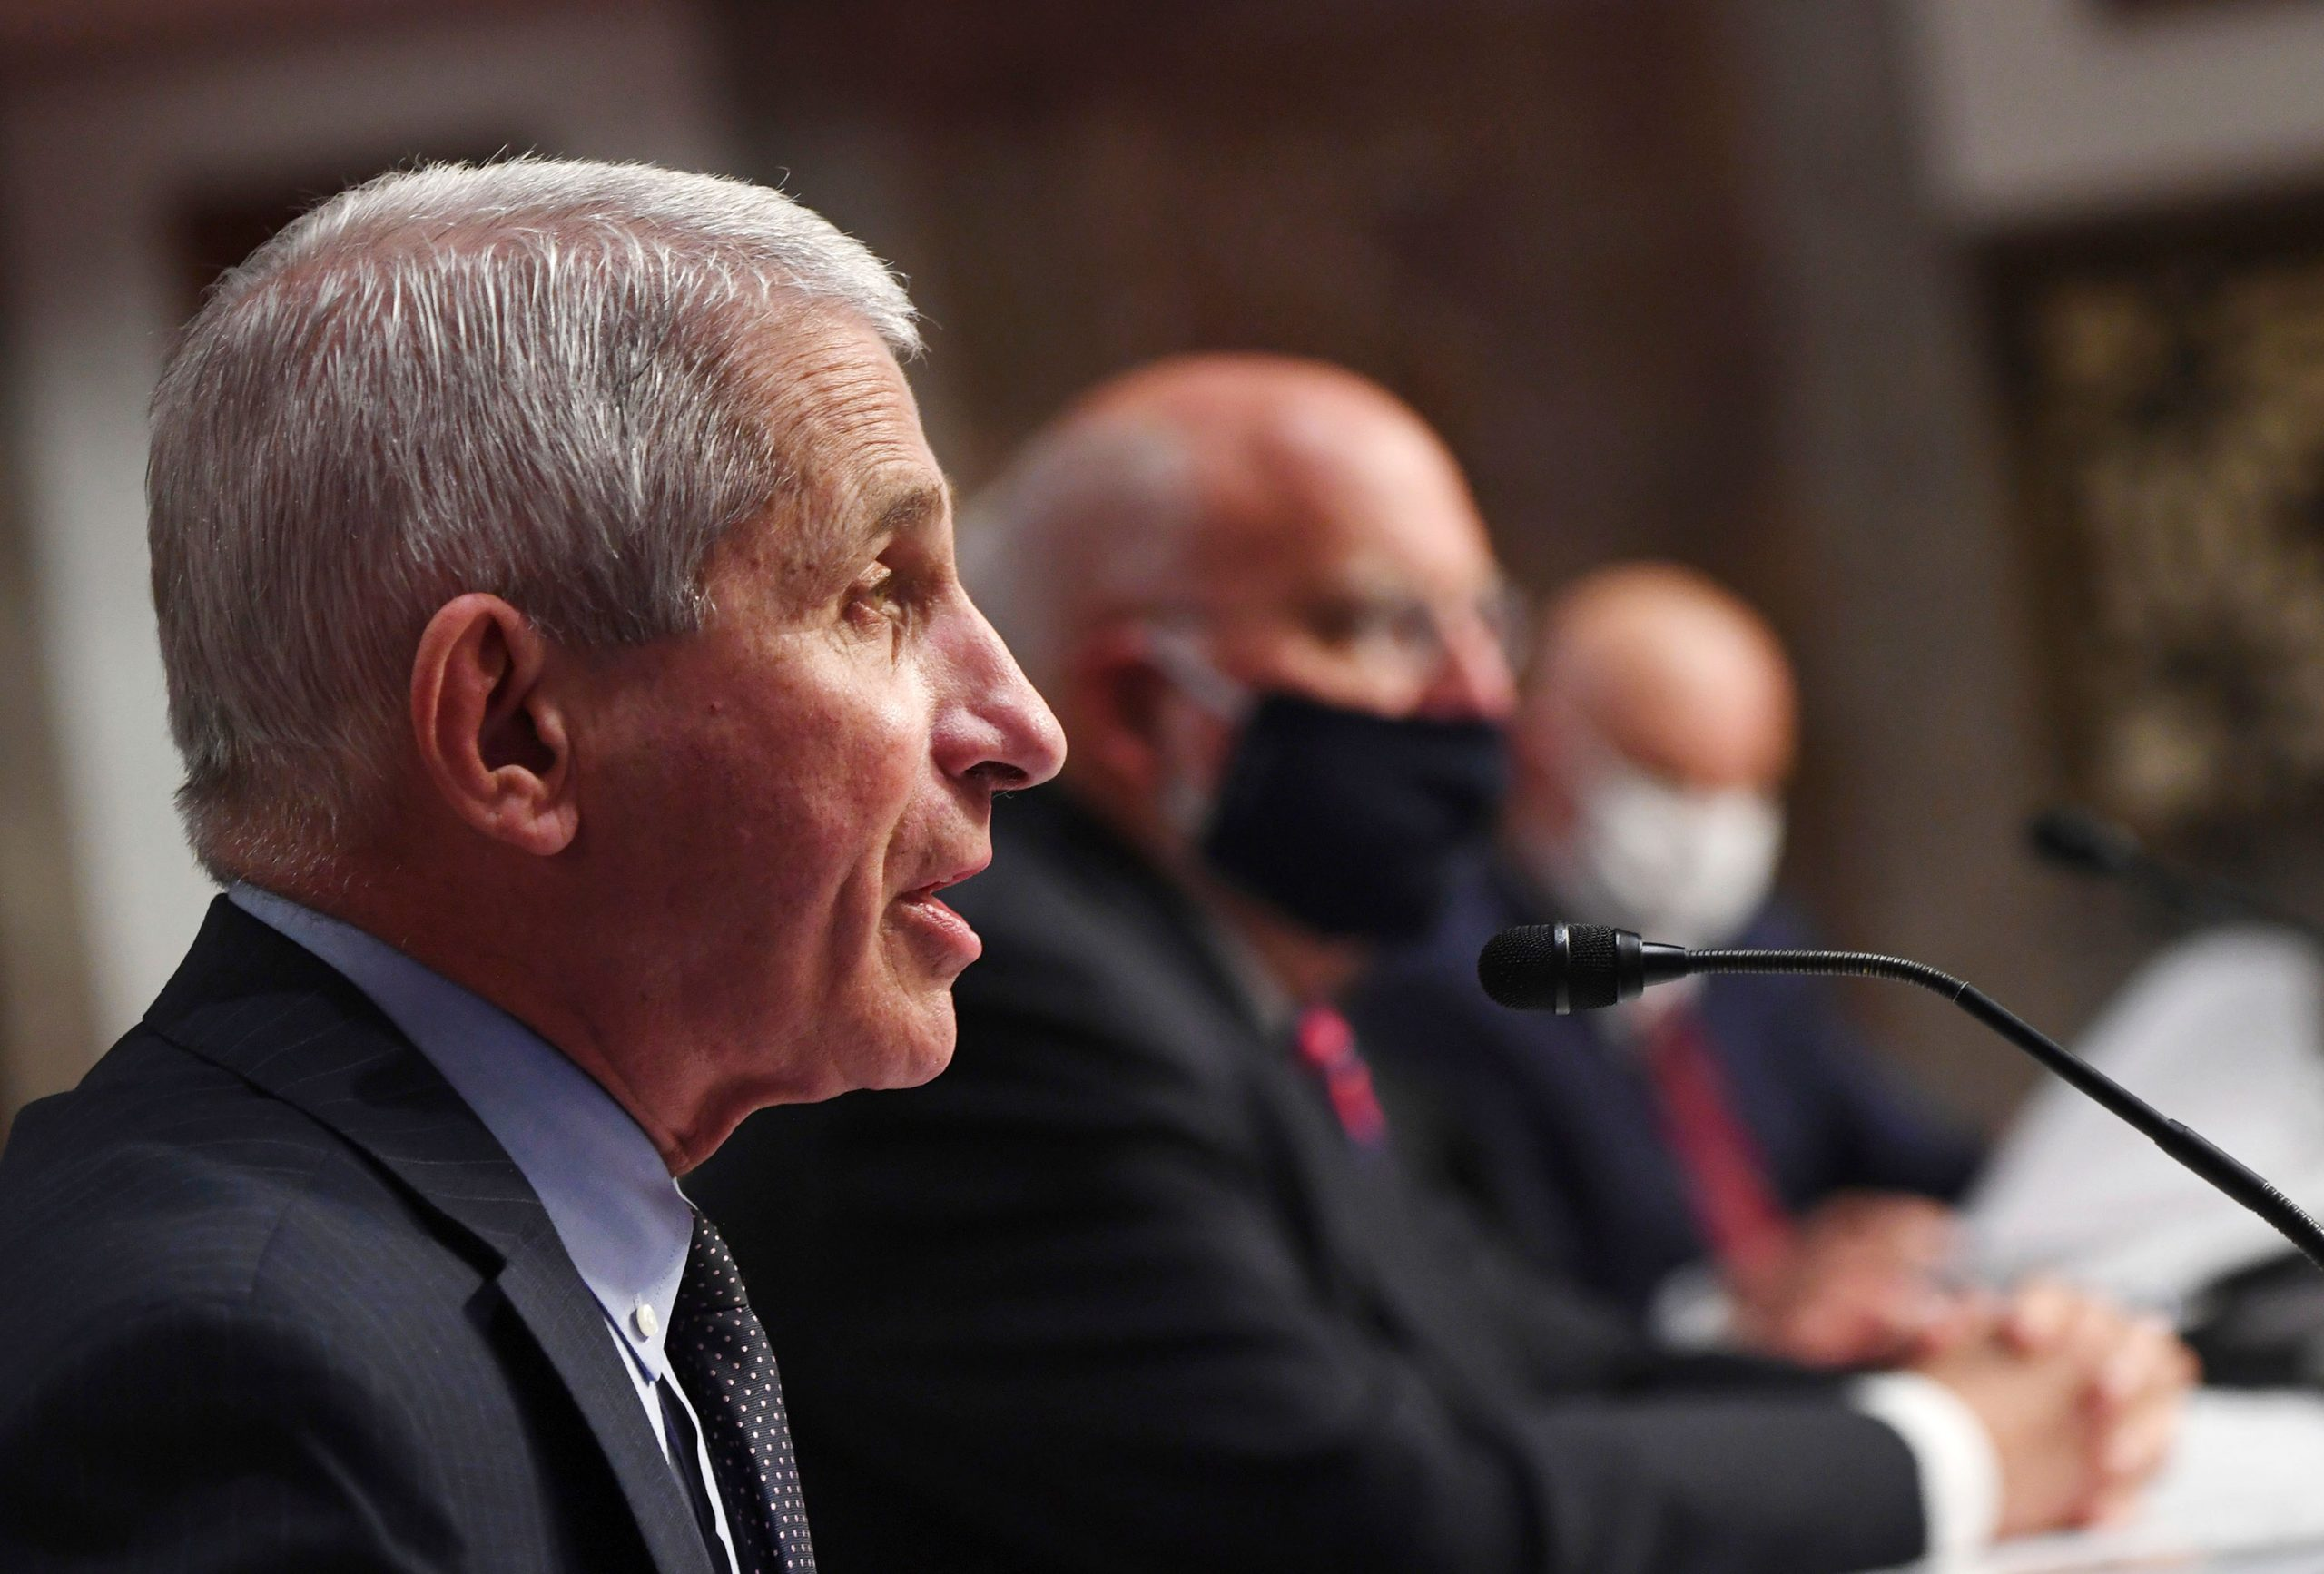 Dr. Anthony Fauci, director of the National Institute for Allergy and Infectious Diseases, testifies before a Senate Health, Education, Labor and Pensions Committee on June 30 in Washington, DC.